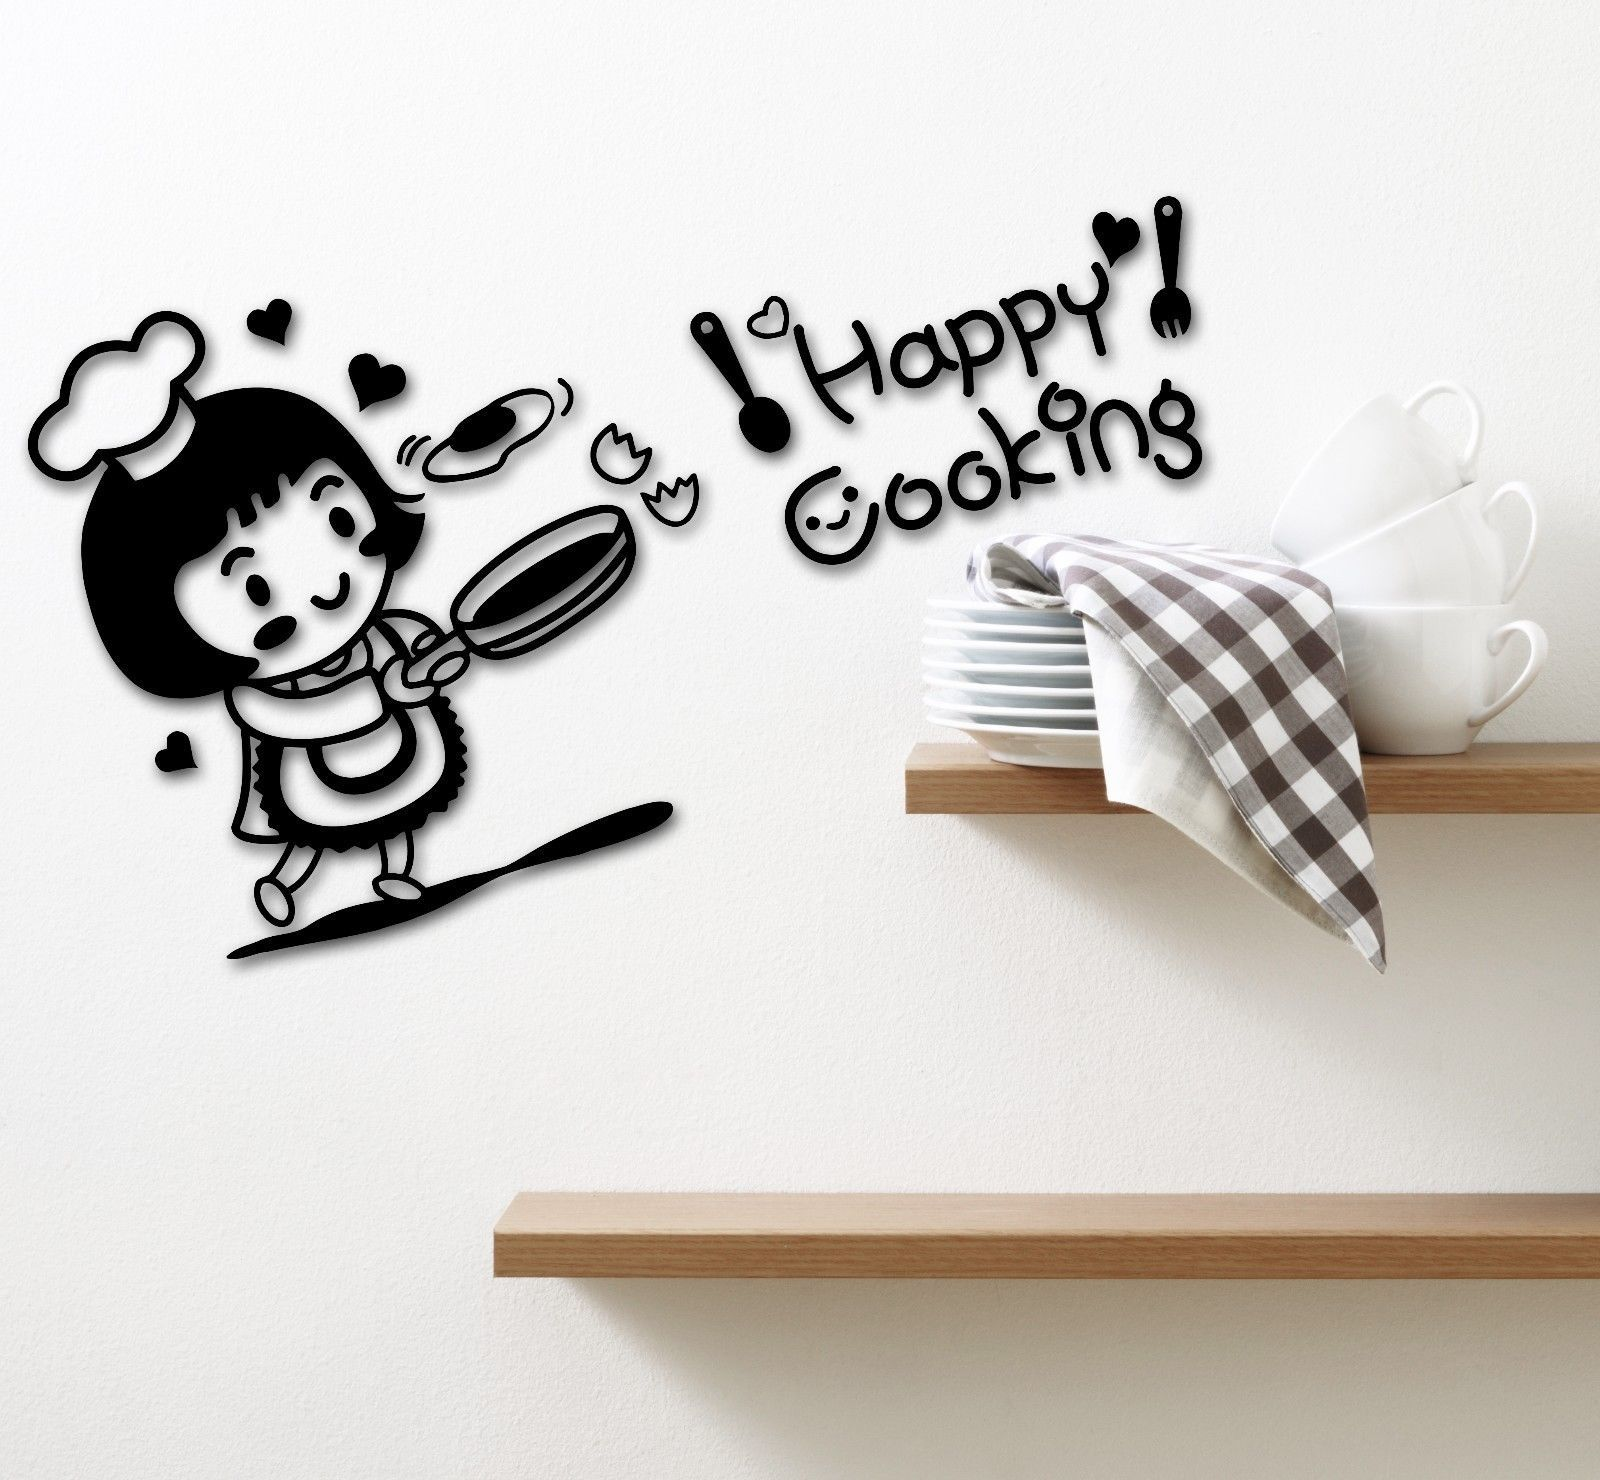 Details about wall stickers vinyl decal for kitchen chef